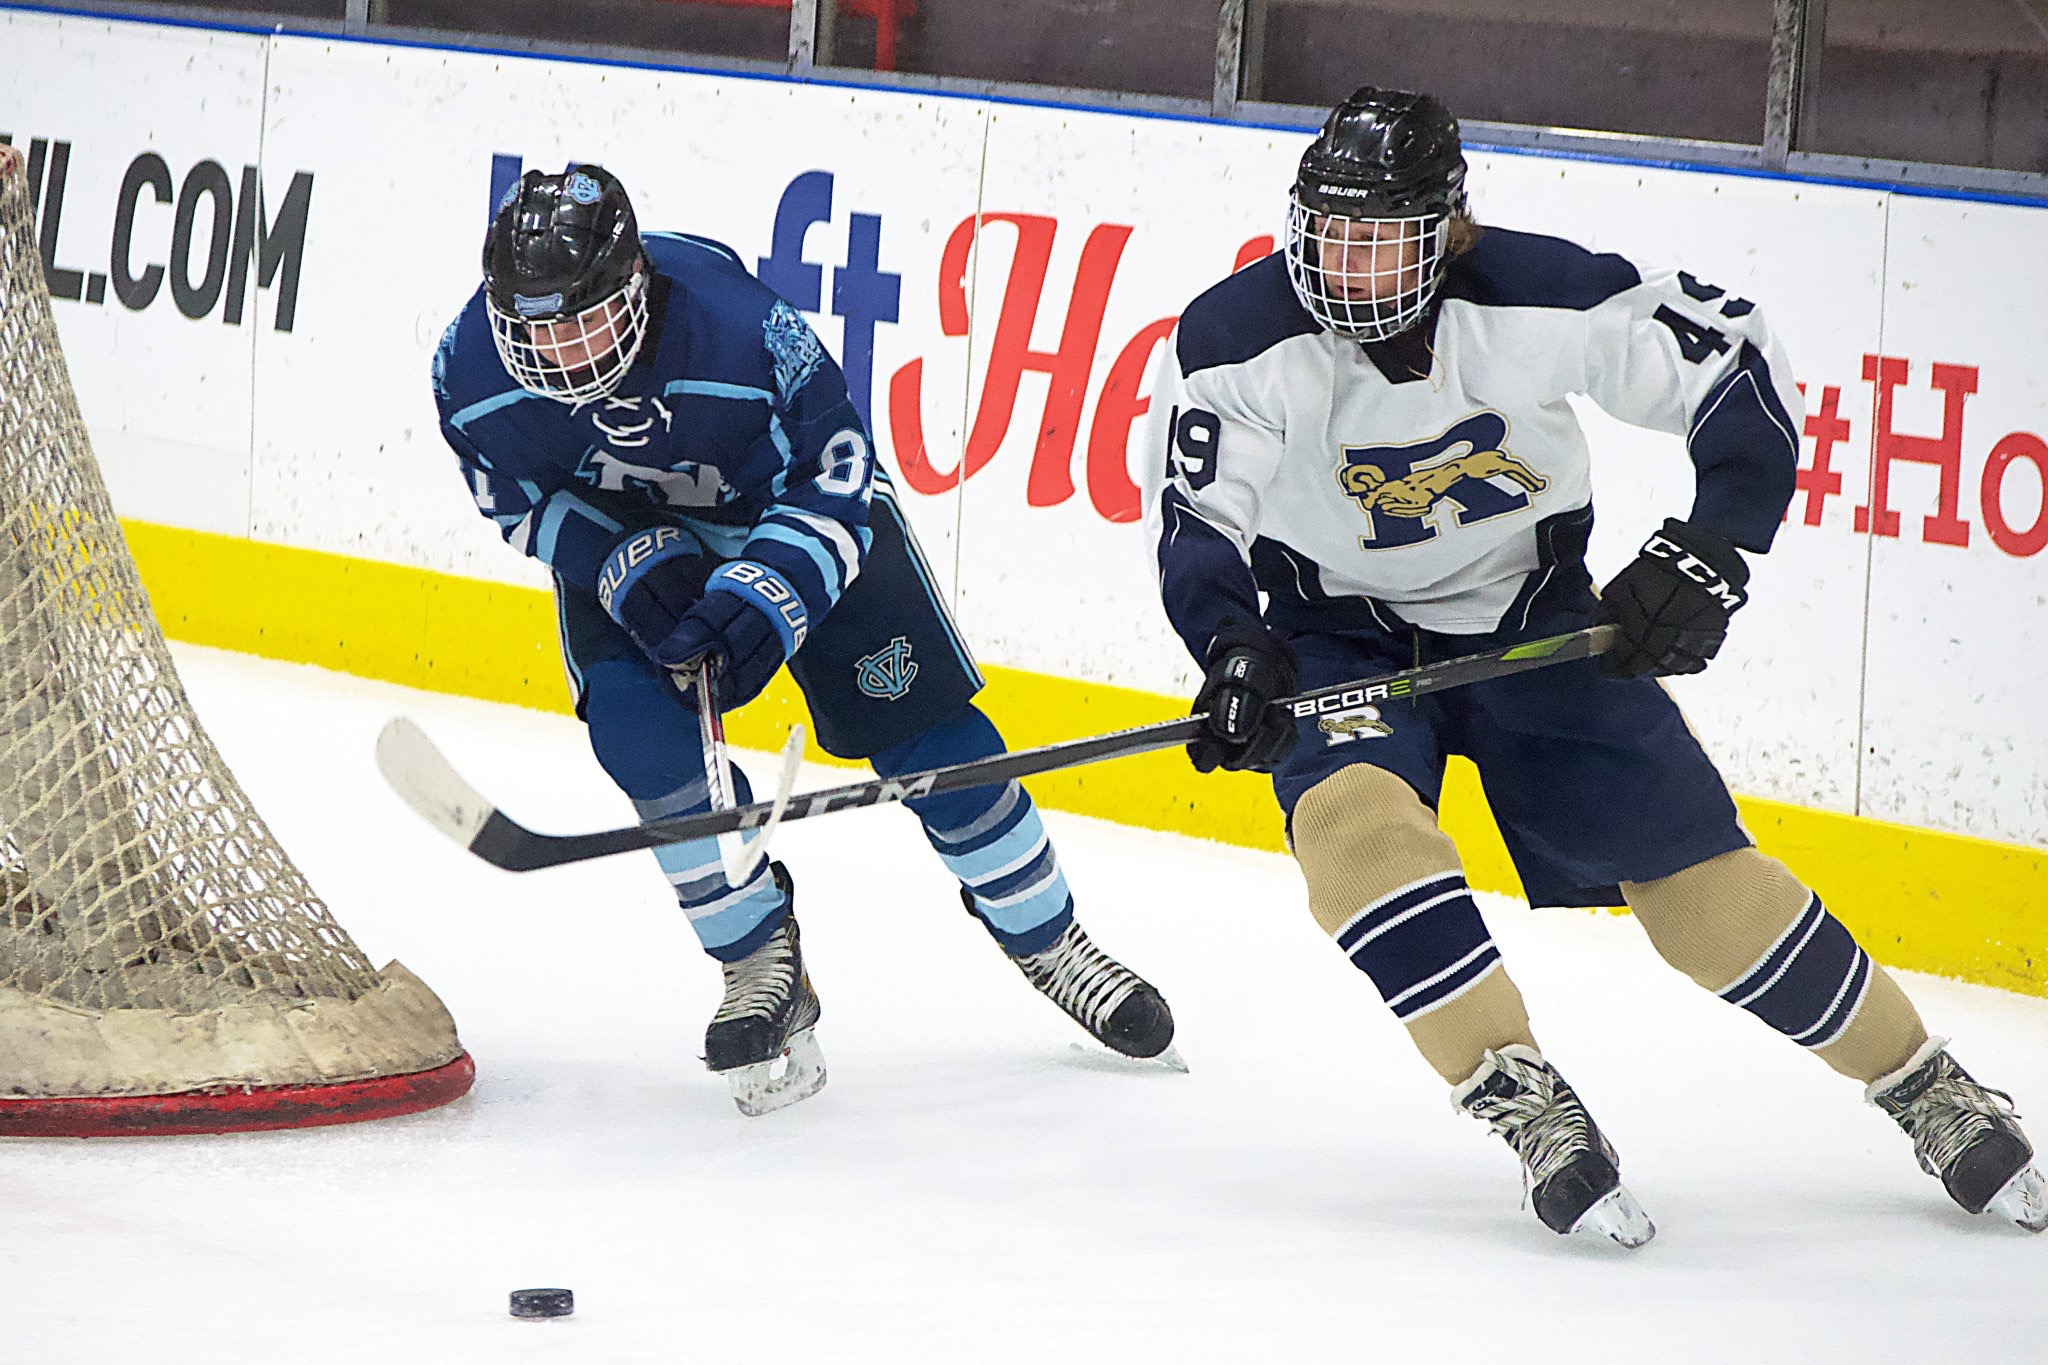 Hockey falls to Central Valley 5 – 3